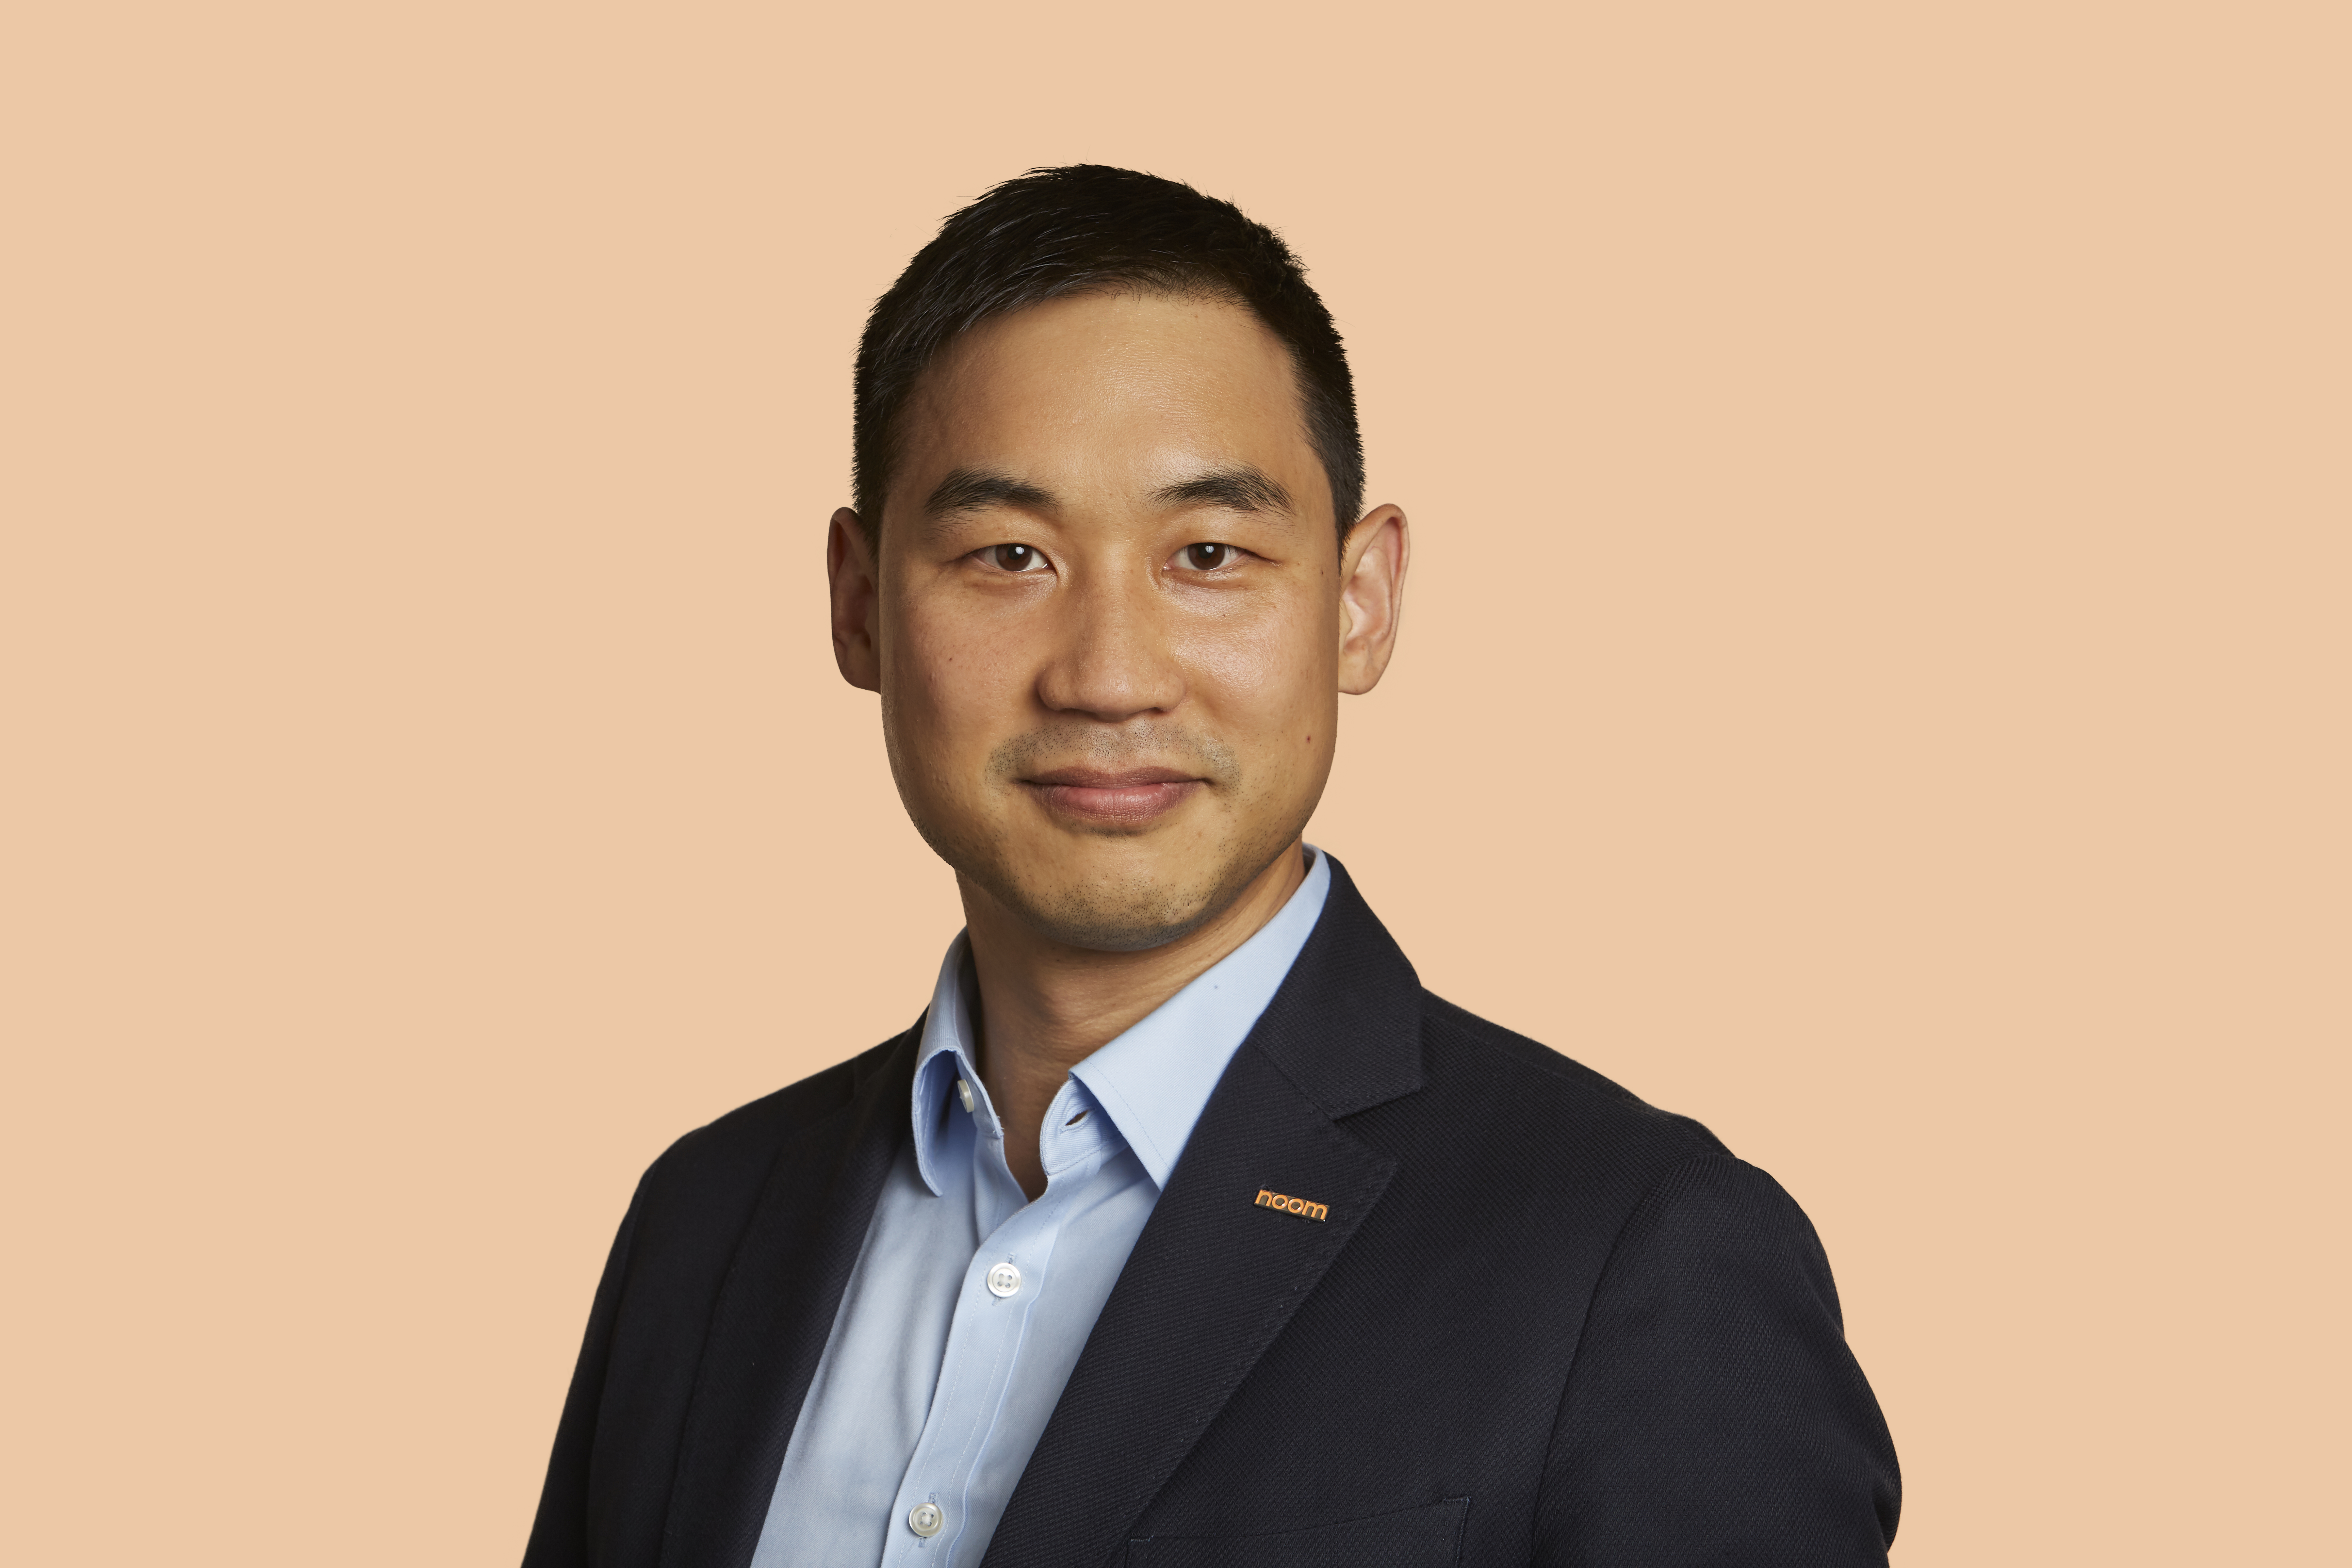 Saeju Jeong, CEO and Co-Founder of Noom